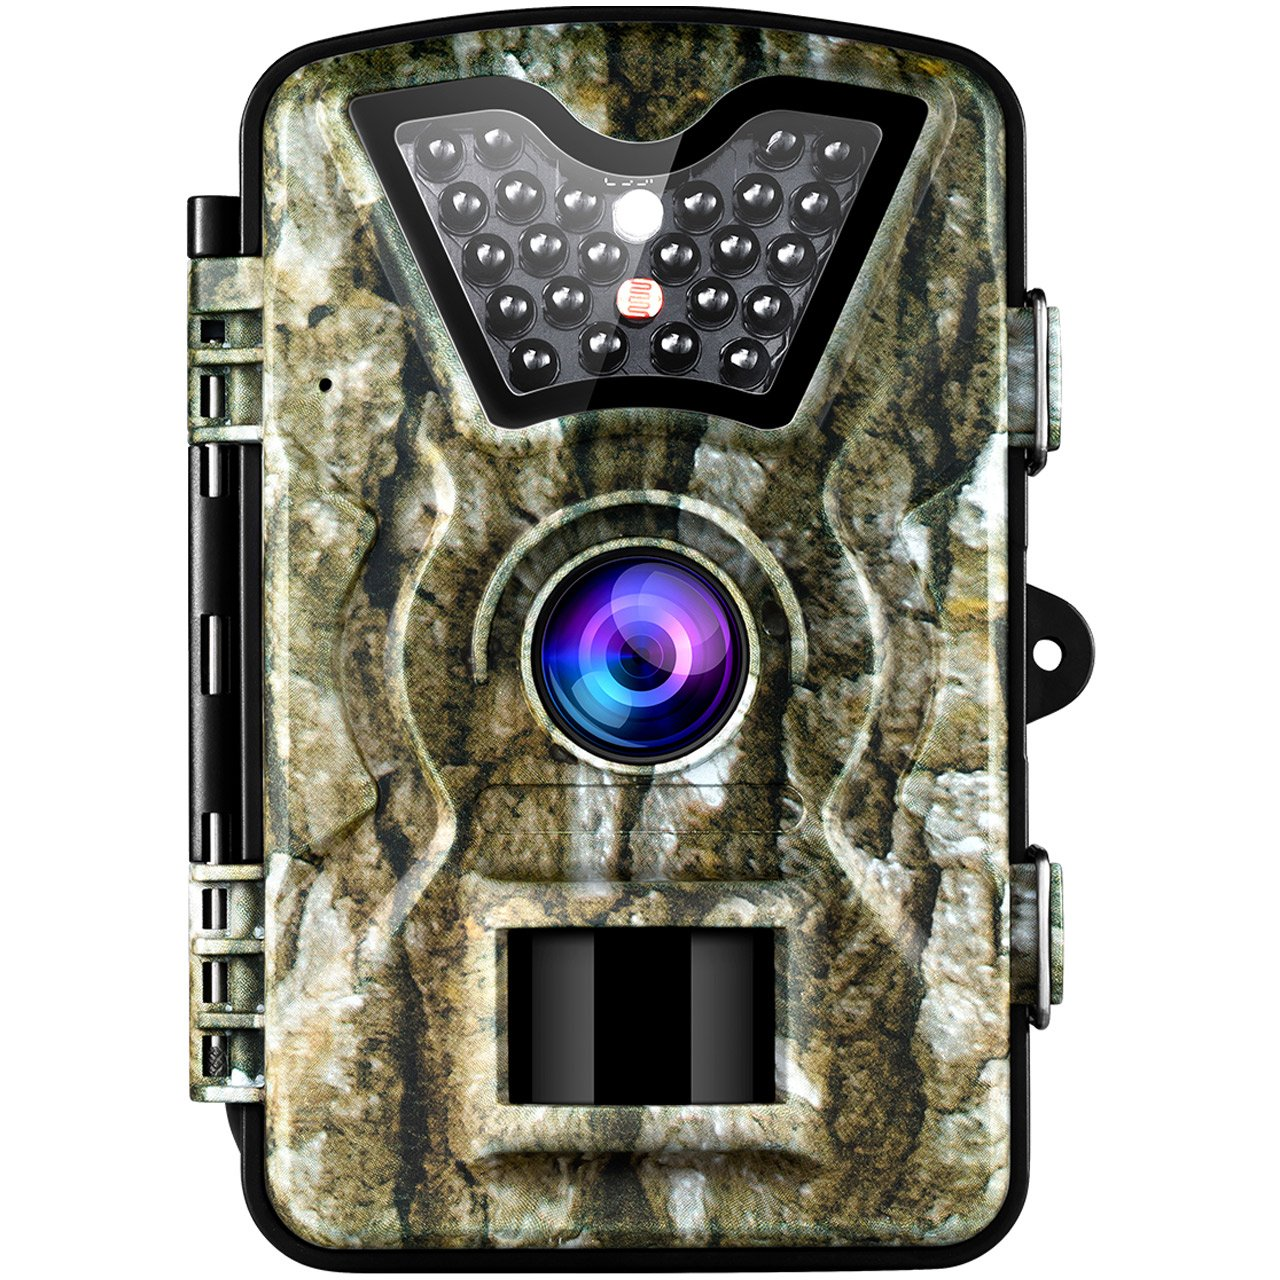 VicTsing Trail Camera, IP66 Waterproof Hunting Camera with 2.4'' LCD Screen,Fast Trigger Game Cam with PIR Sensor, Night Vision, Low Glow Tech for Wildlife Observation, Securtiy